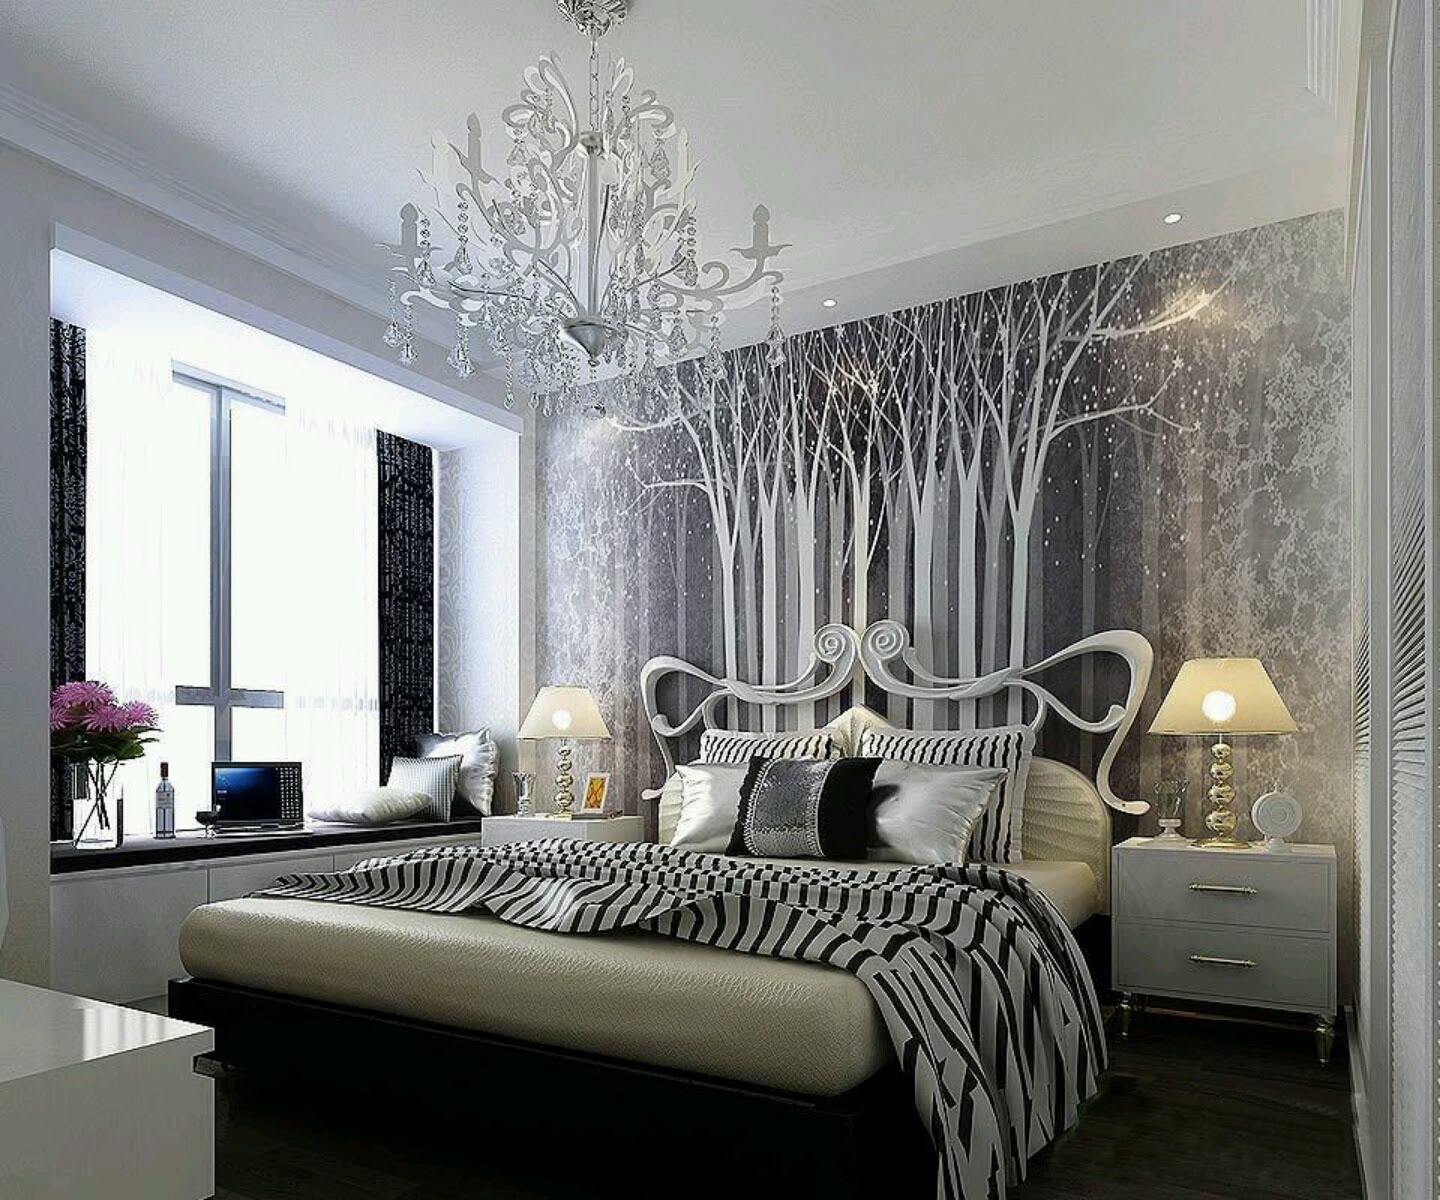 Romantic Bedroom Ideas for New Family - Bee Home Plan ...